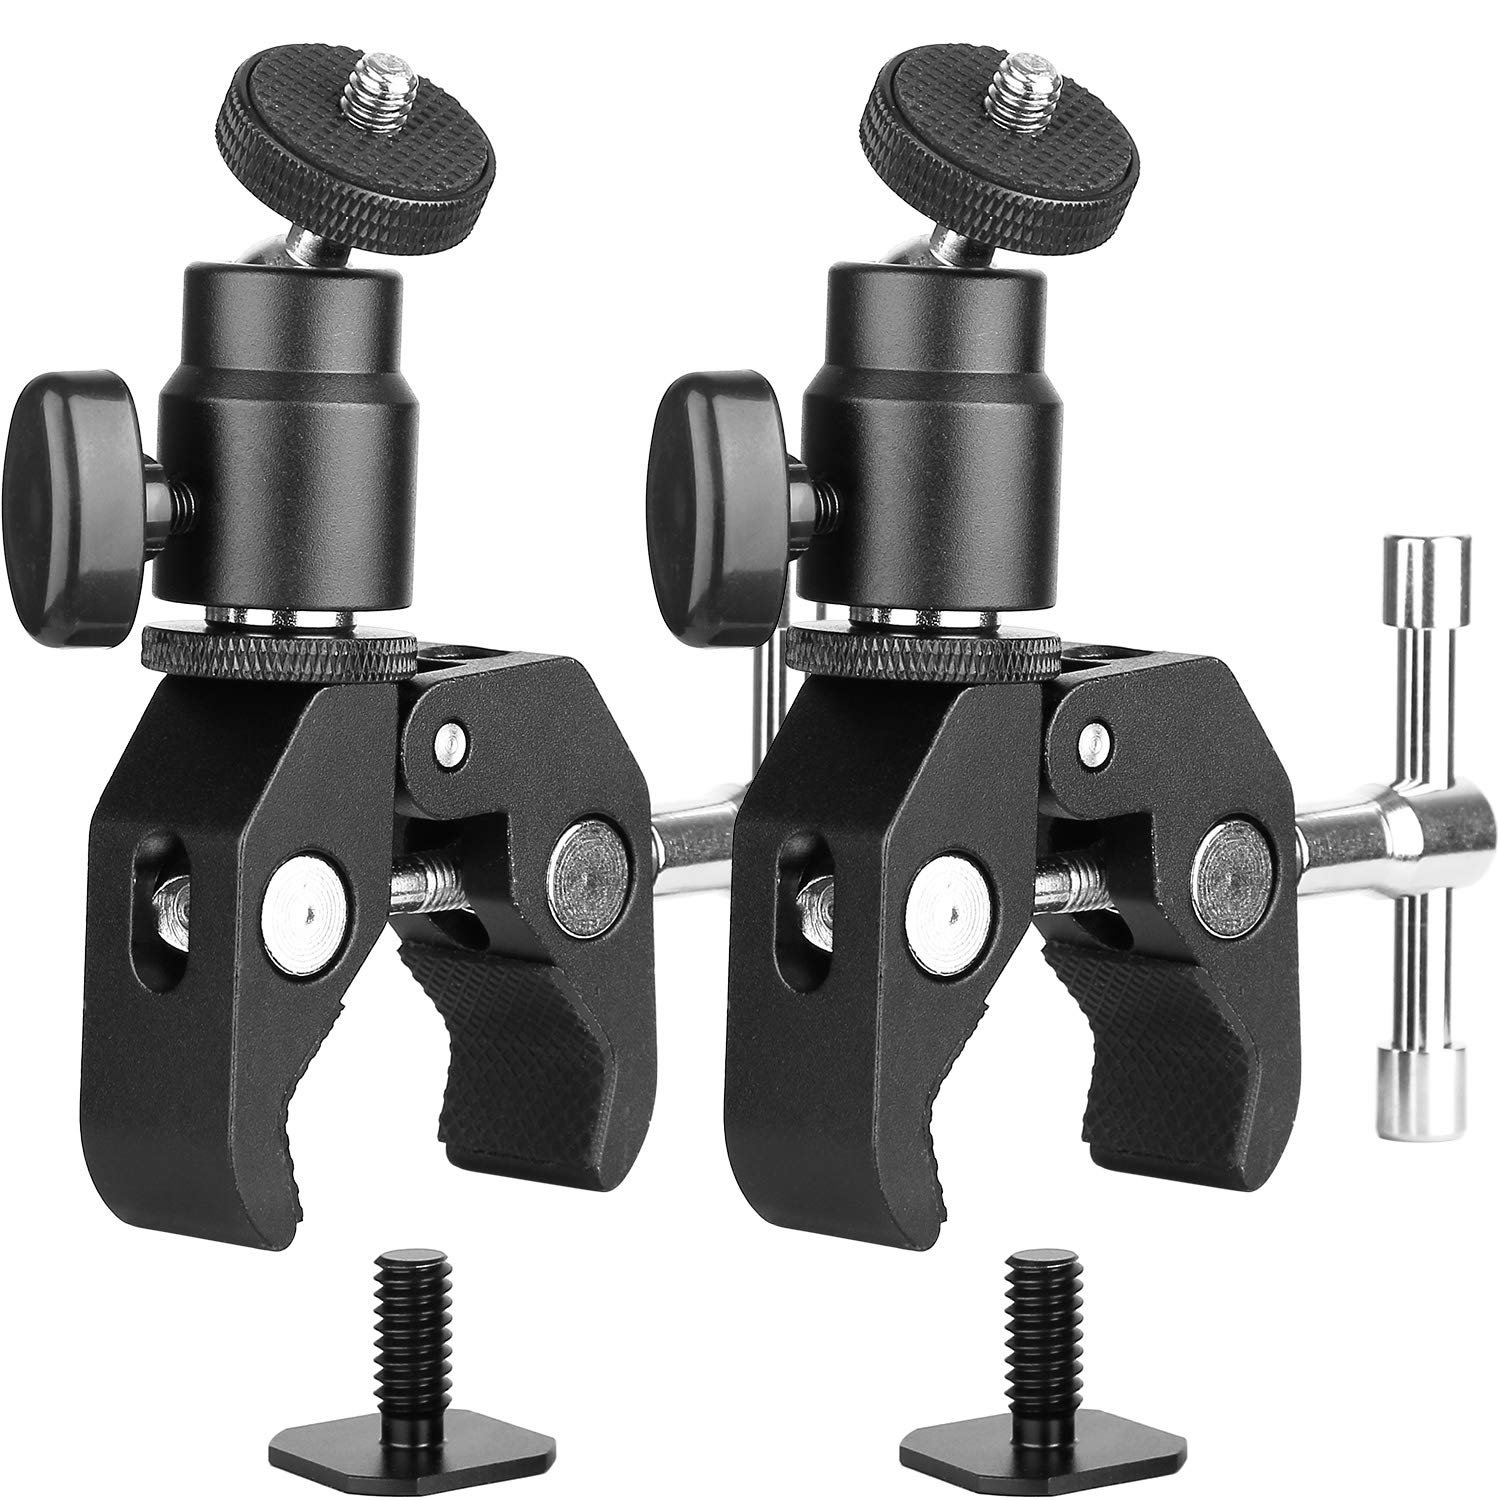 ChromLives Camera Clamp Mount Ball Head Monitor Clamp Super Clamp and Mini Ball Head Hot Shoe Mount with 1/4''-20 Tripod Screw for LCD/DV Monitor, LED Lights, Flash,Microphone and More 2Pack